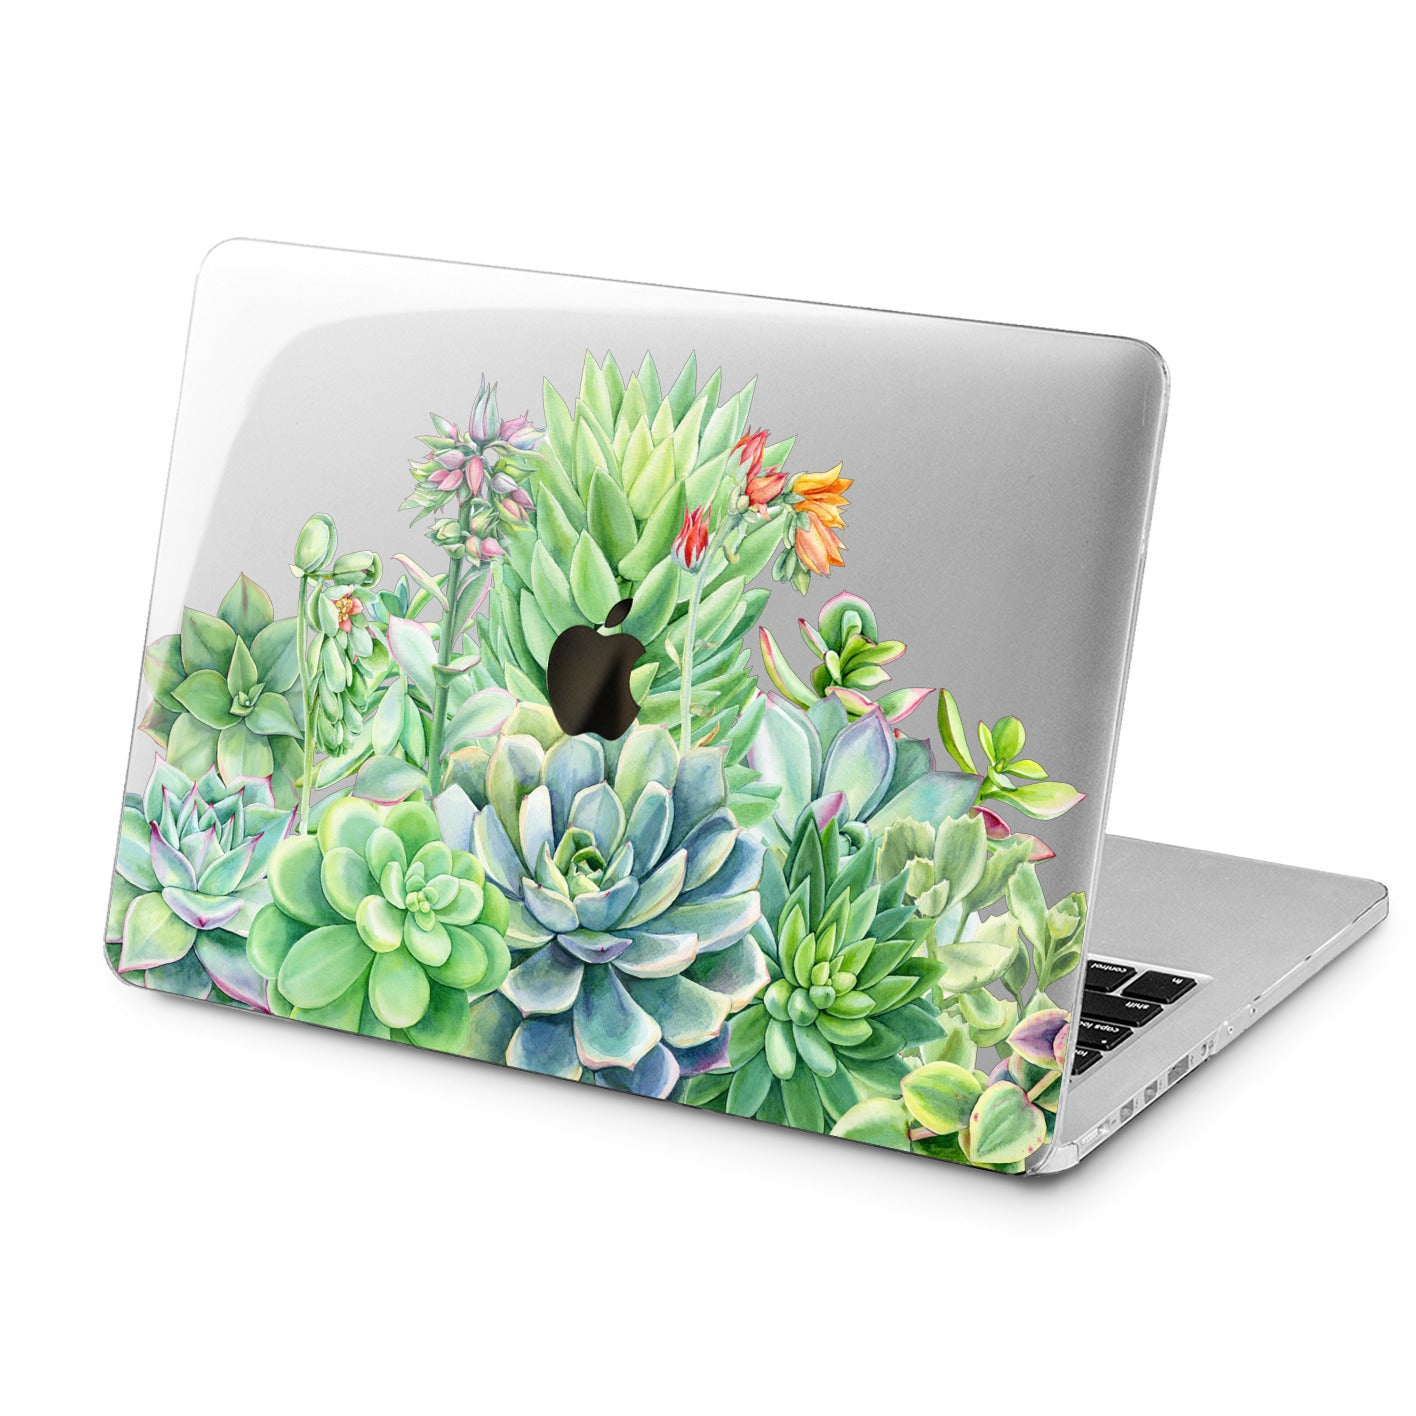 Lex Altern Lex Altern Greeen Succulents Case for your Laptop Apple Macbook.